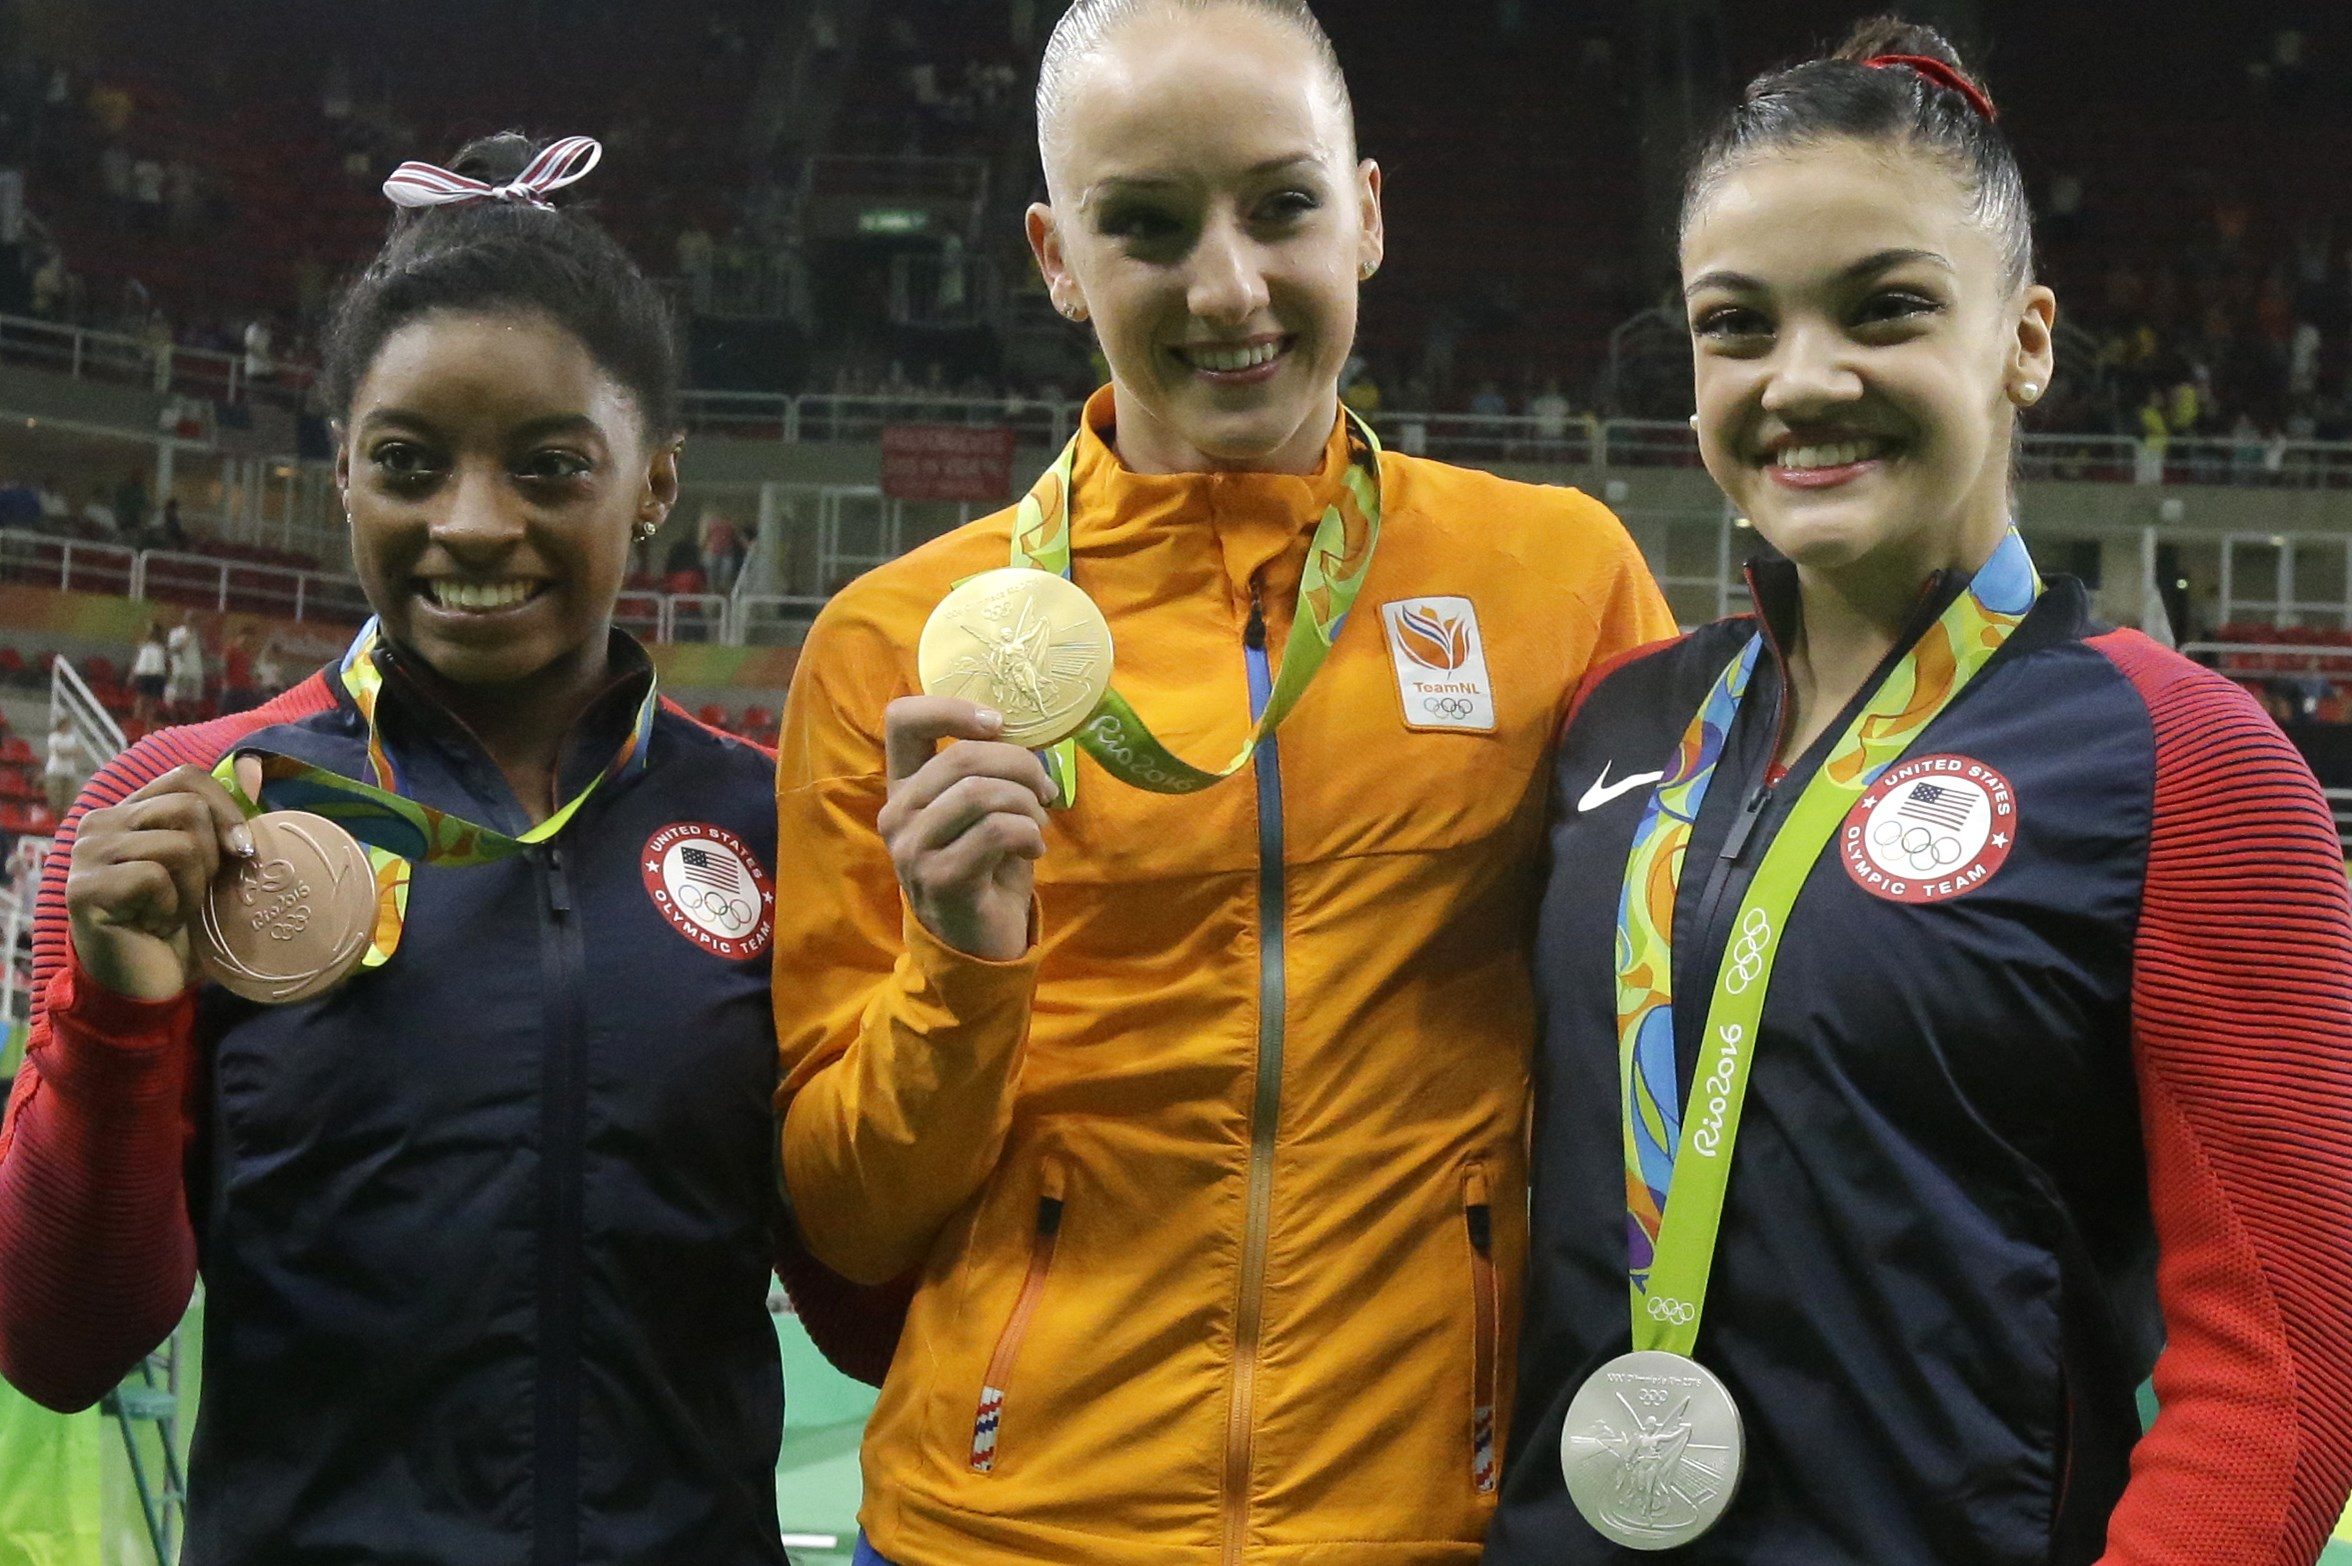 Netherlands' Sanne Wevers, center, gold, United States' Lauren Hernandez, right, silver, and United States' Simone Biles, bronze, display their medals for balance beam during the artistic gymnastics women's apparatus final at the 2016 Summer Olympics in R